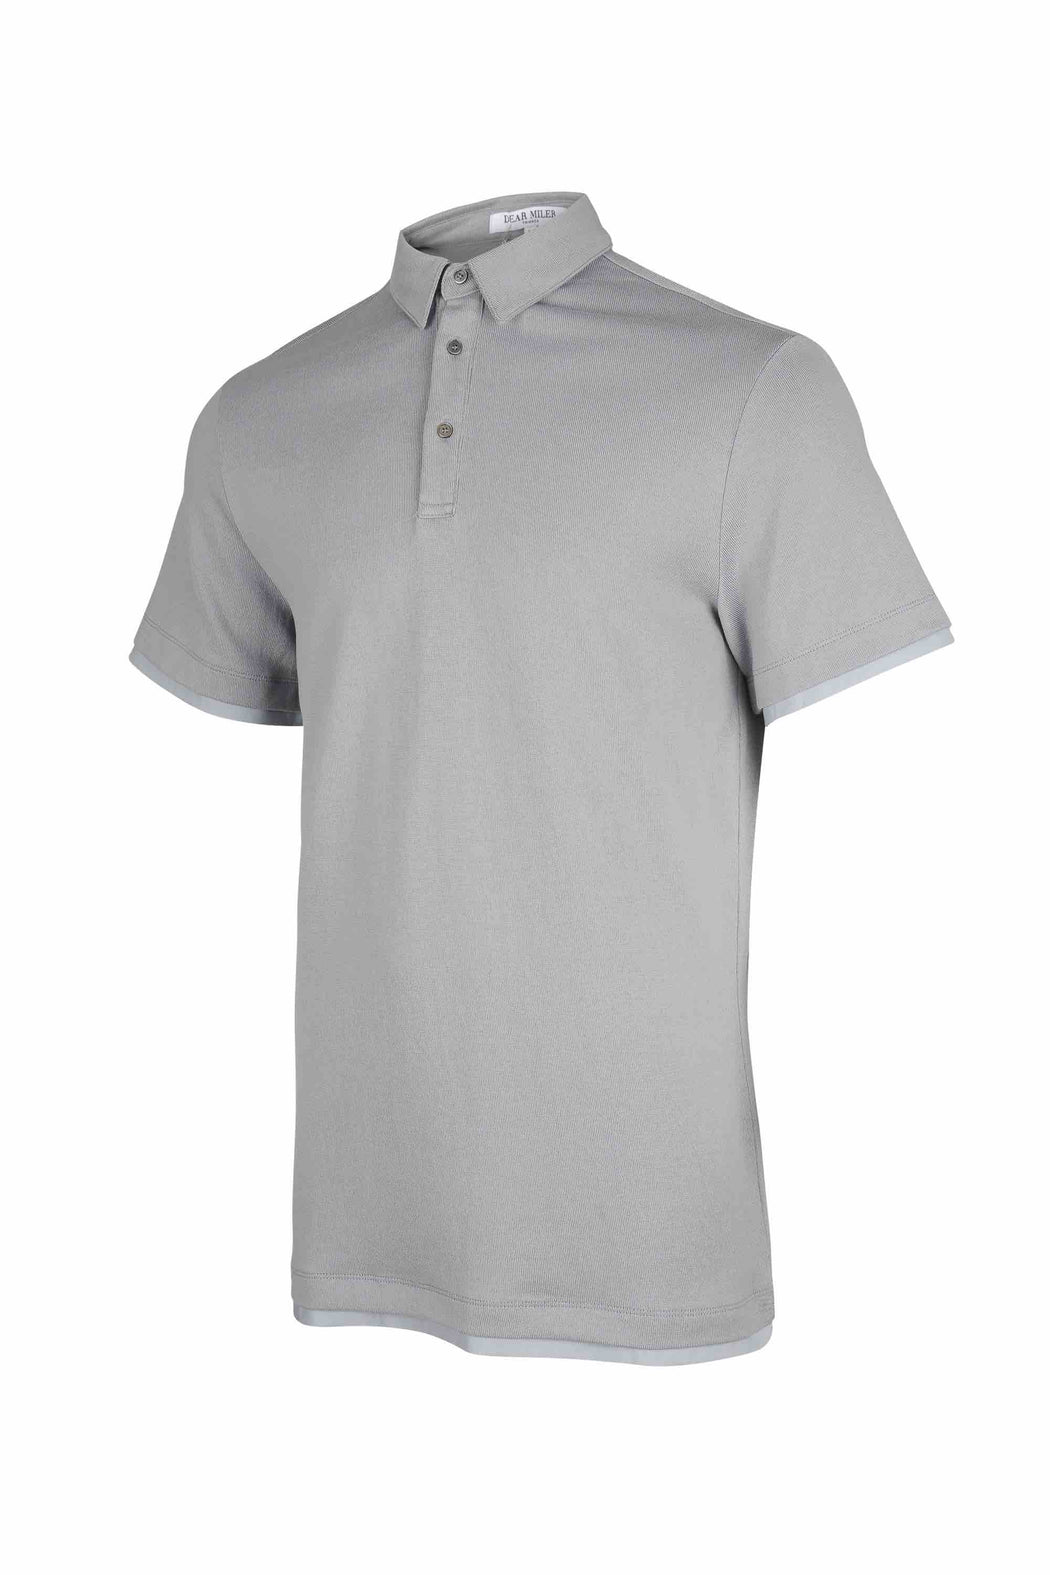 Side view of Men Contrast Polo Shirt, made with Organic Cotton in Grey